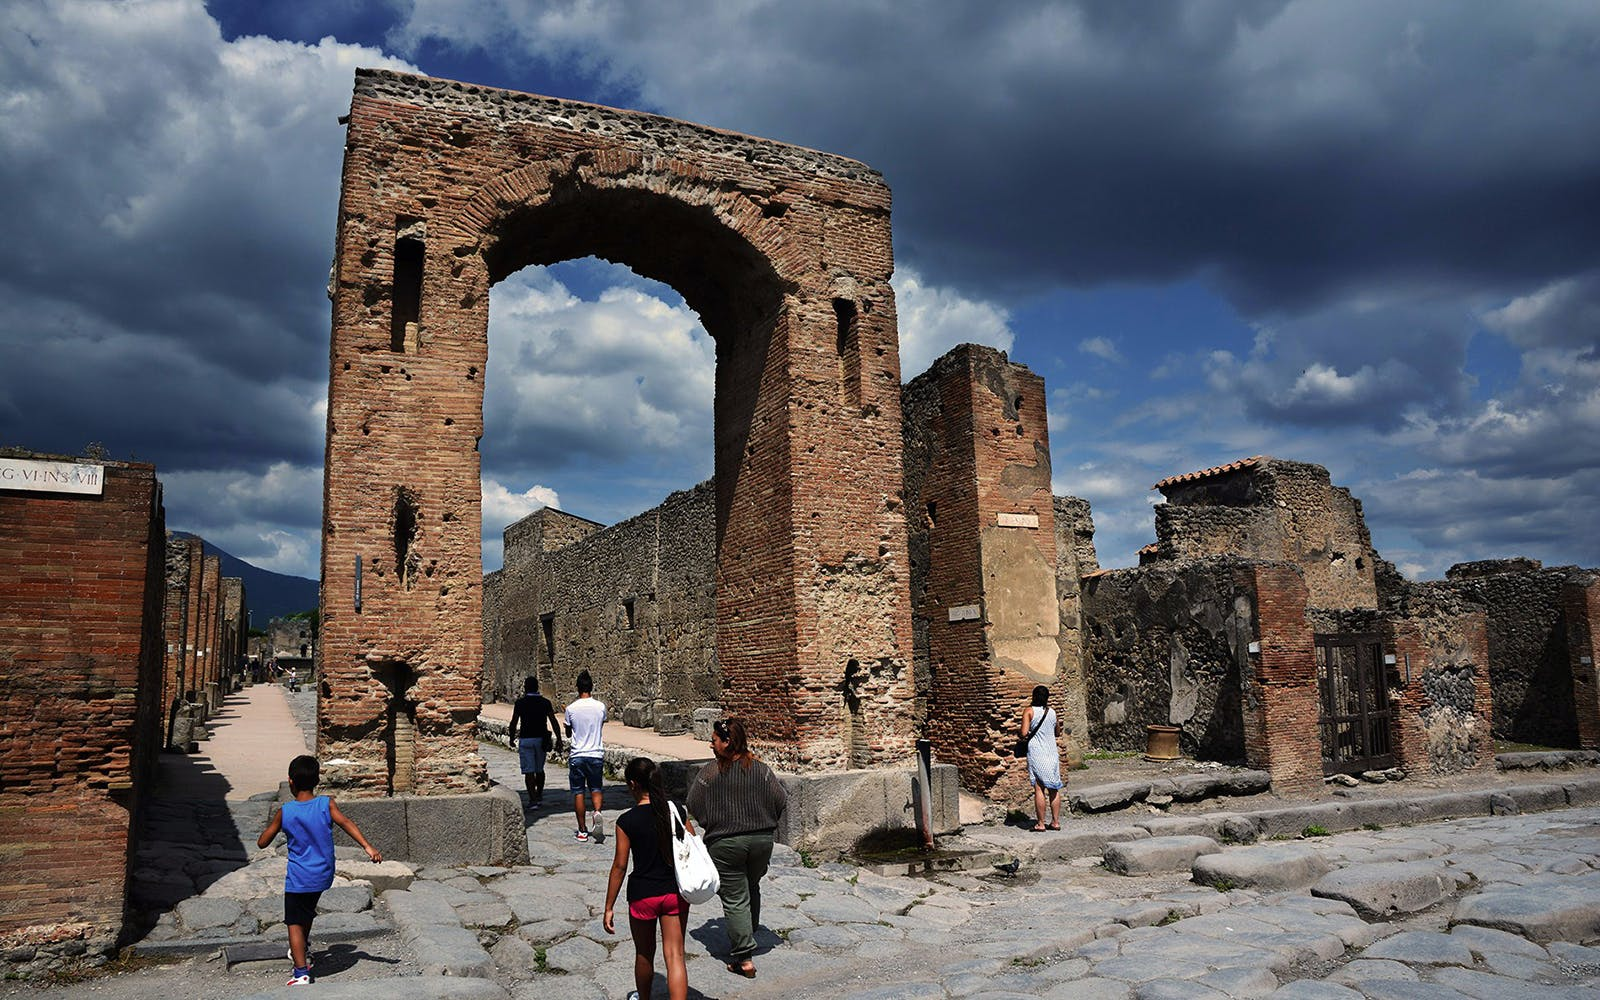 pompeii & amalfi coast full day tour from rome-3